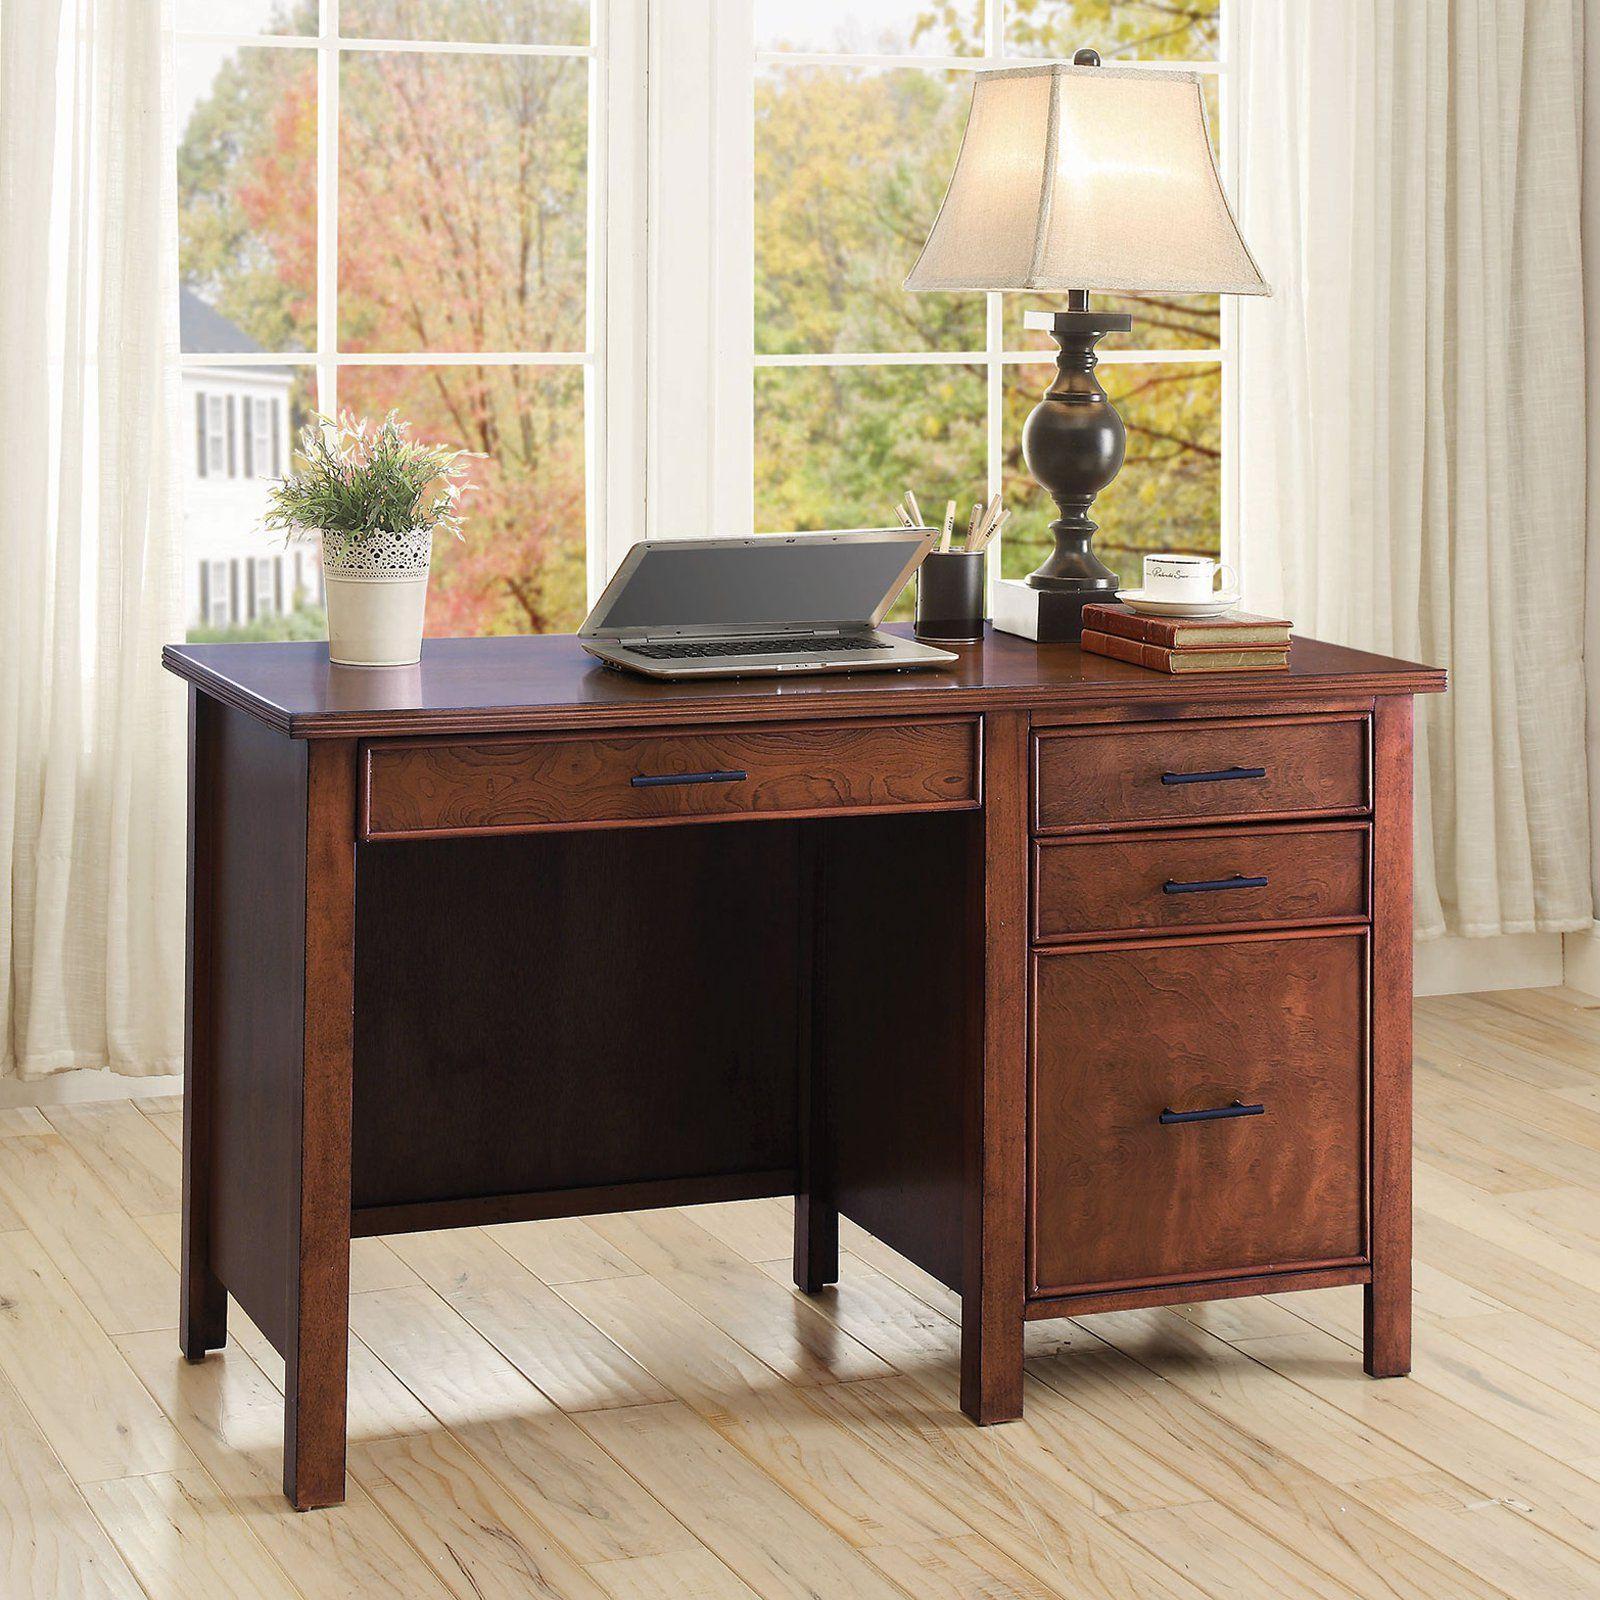 coaster furniture writing desk with file drawer in 2019 products rh pinterest com